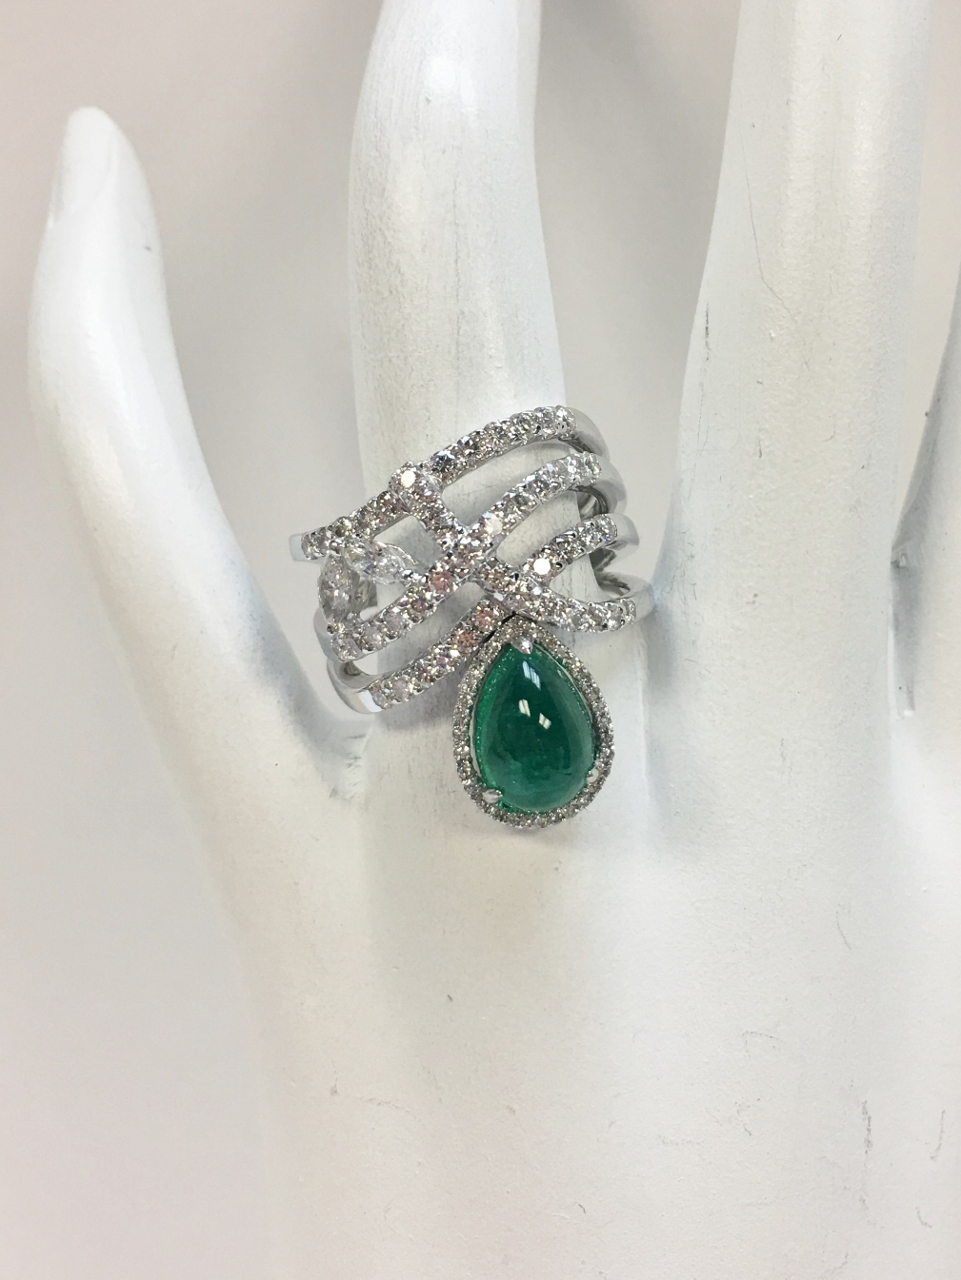 2.40 Carats Cabochon Emerald & Diamond Ring